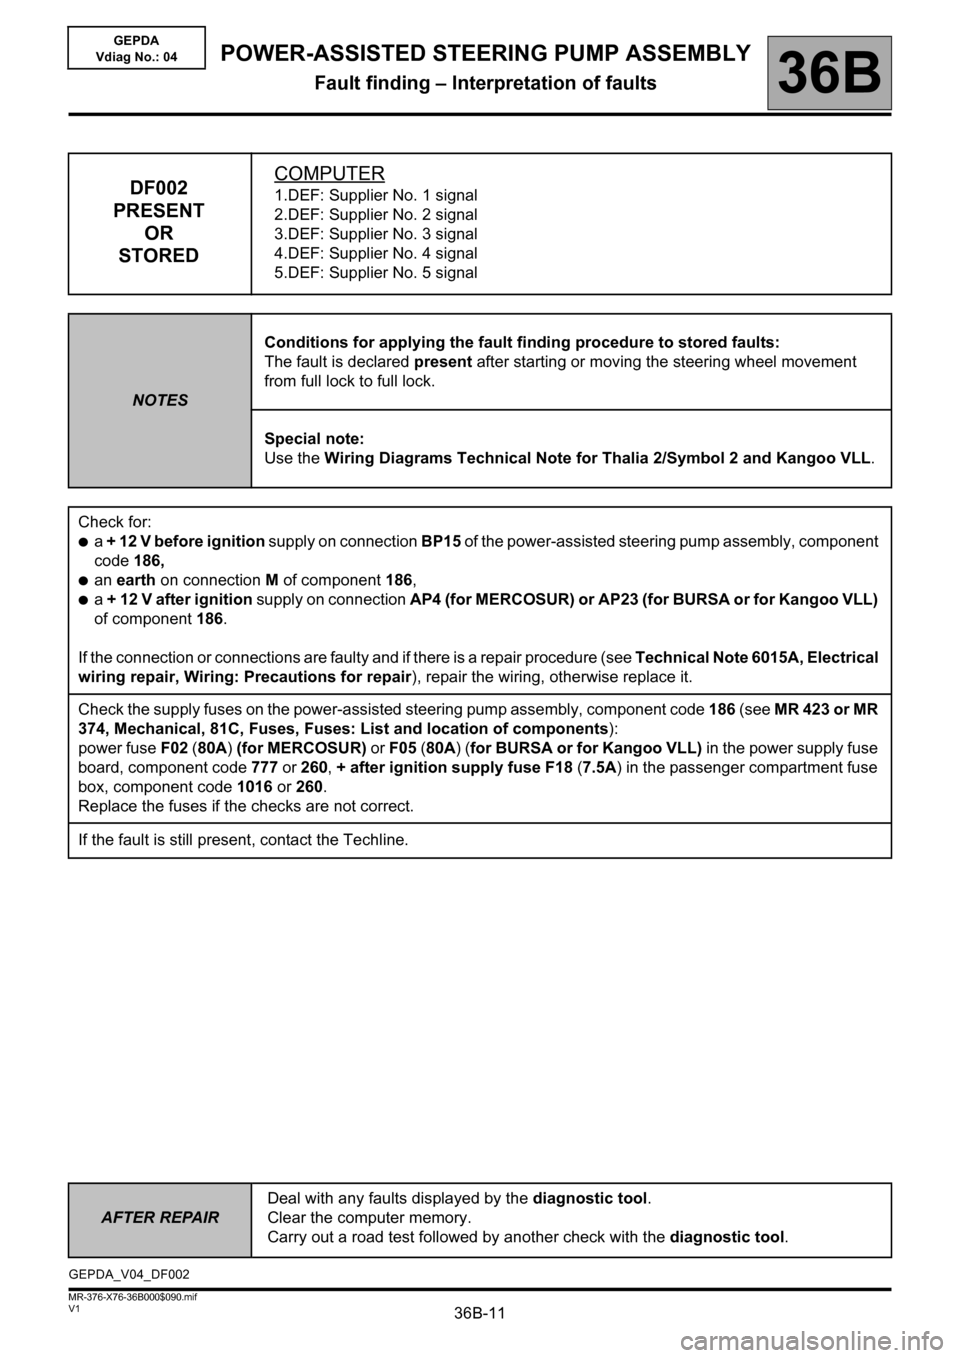 RENAULT KANGOO 2013 X61 / 2.G Power Steering Pump Assembly Workshop Manual, Page 11